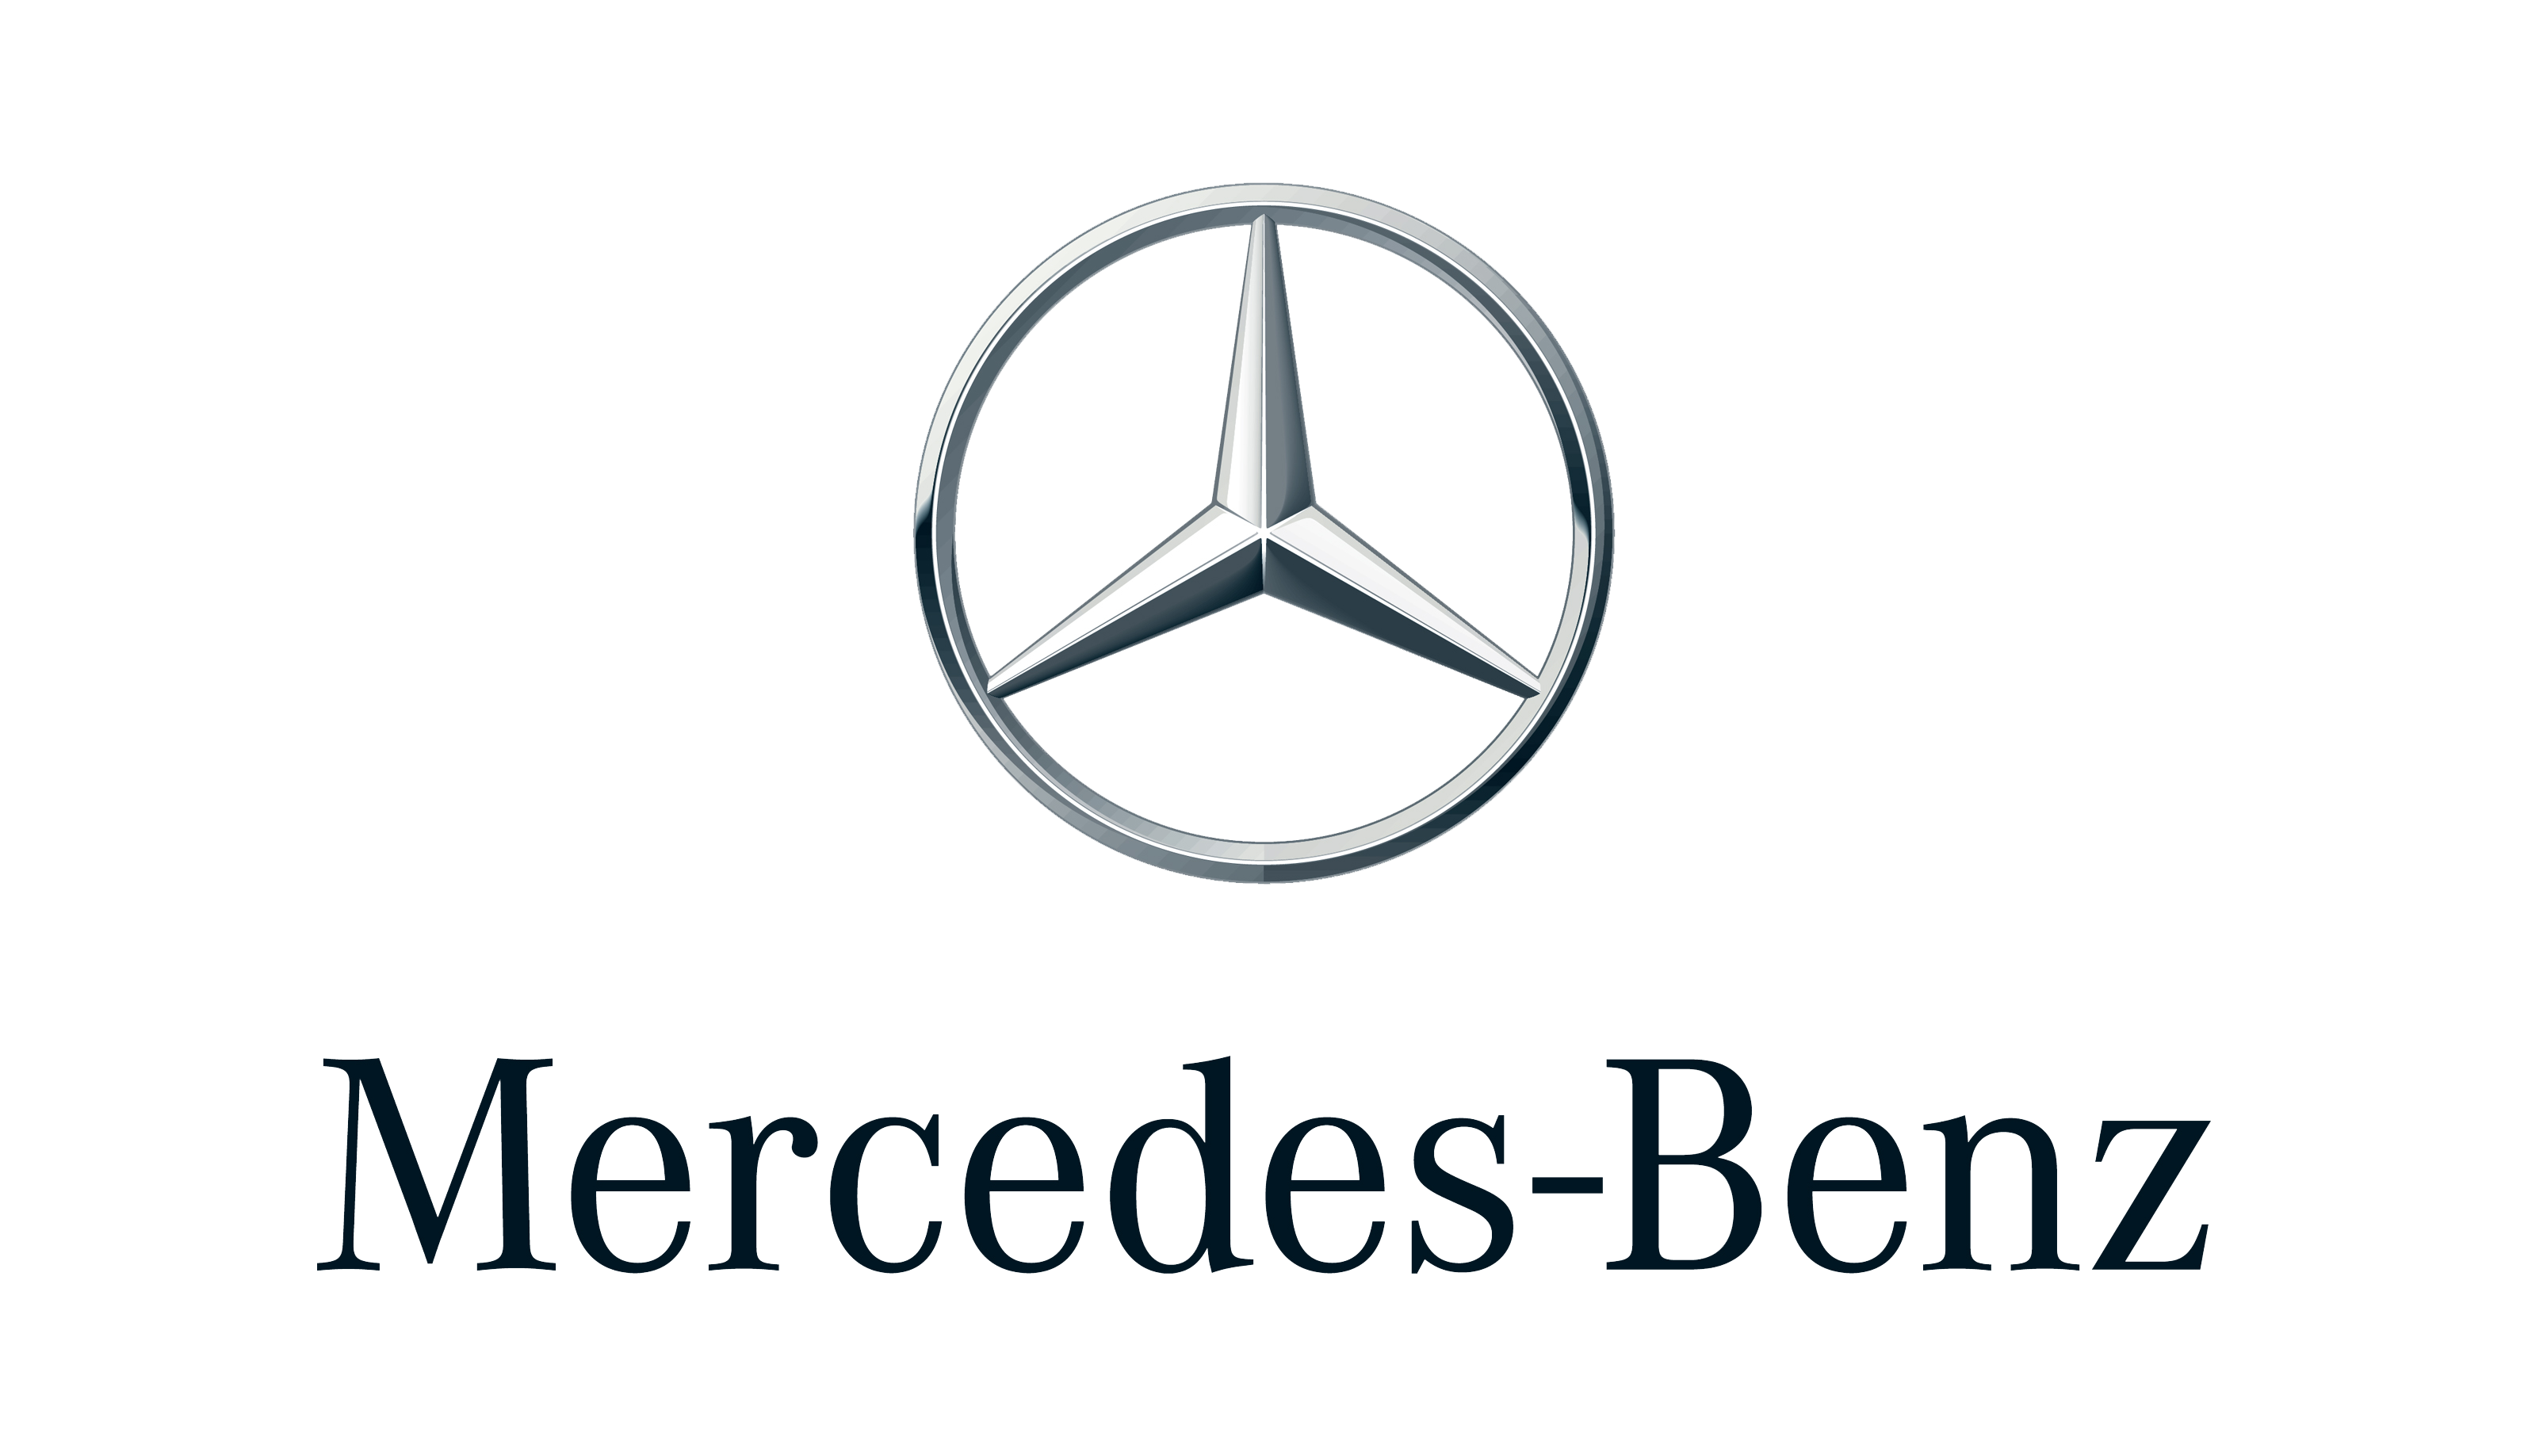 Mercedes logos PNG images free download.